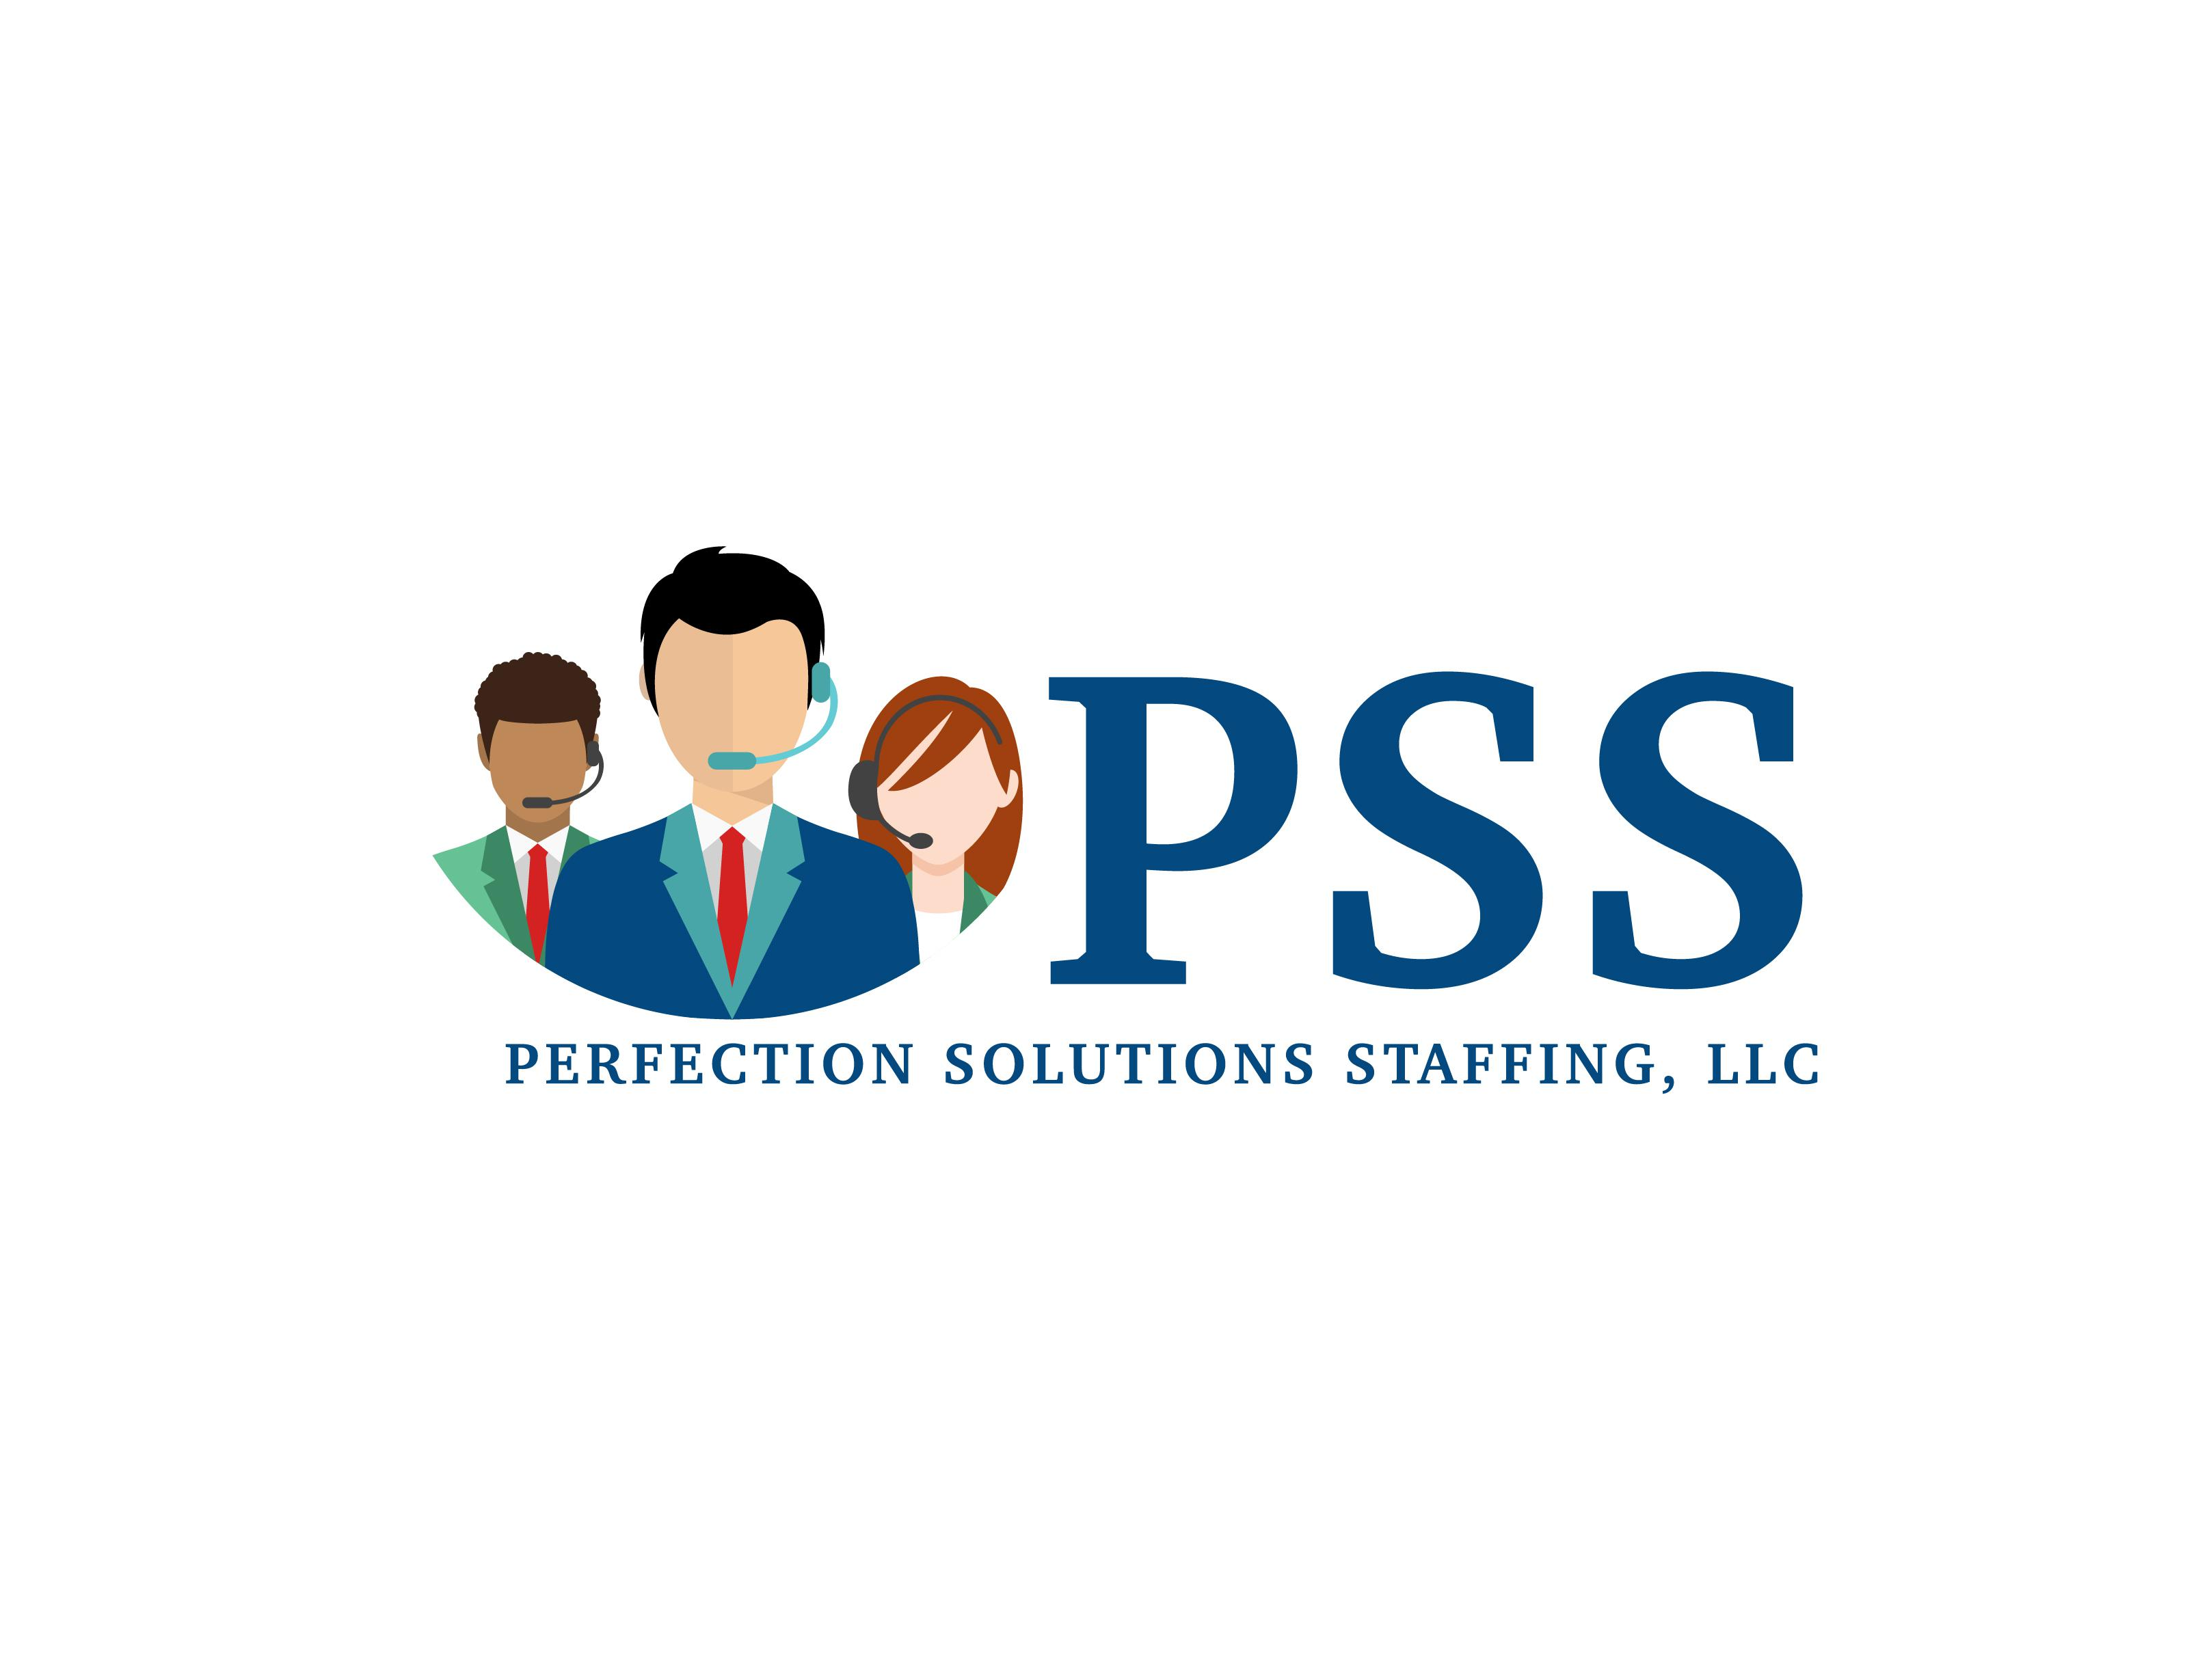 Perfection Solutions Staffing, LLC Logo